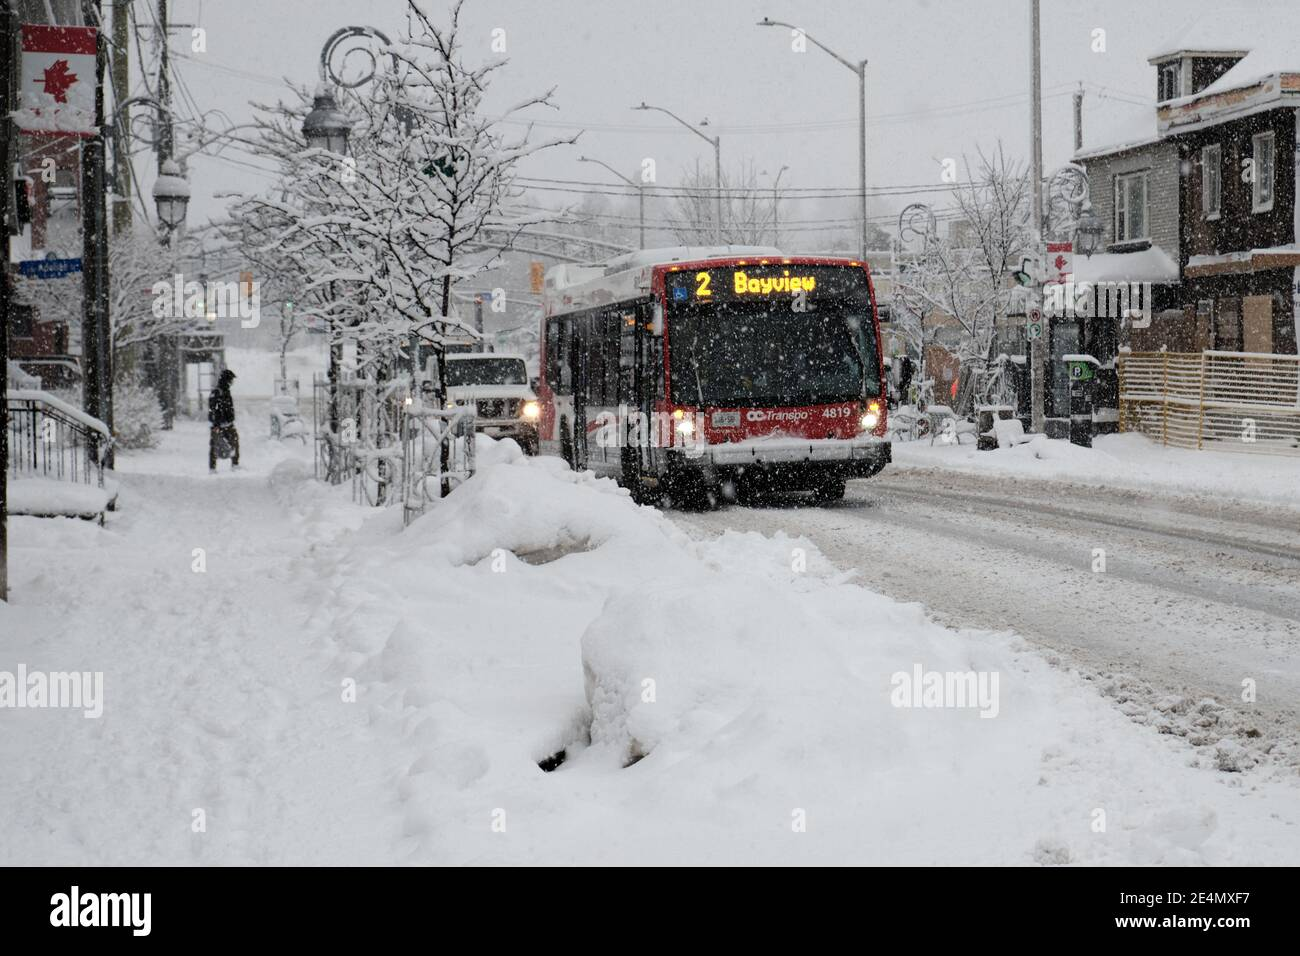 On Ottawa public bus No. 2 on a city street with heavy snow falling during a winter storm Stock Photo